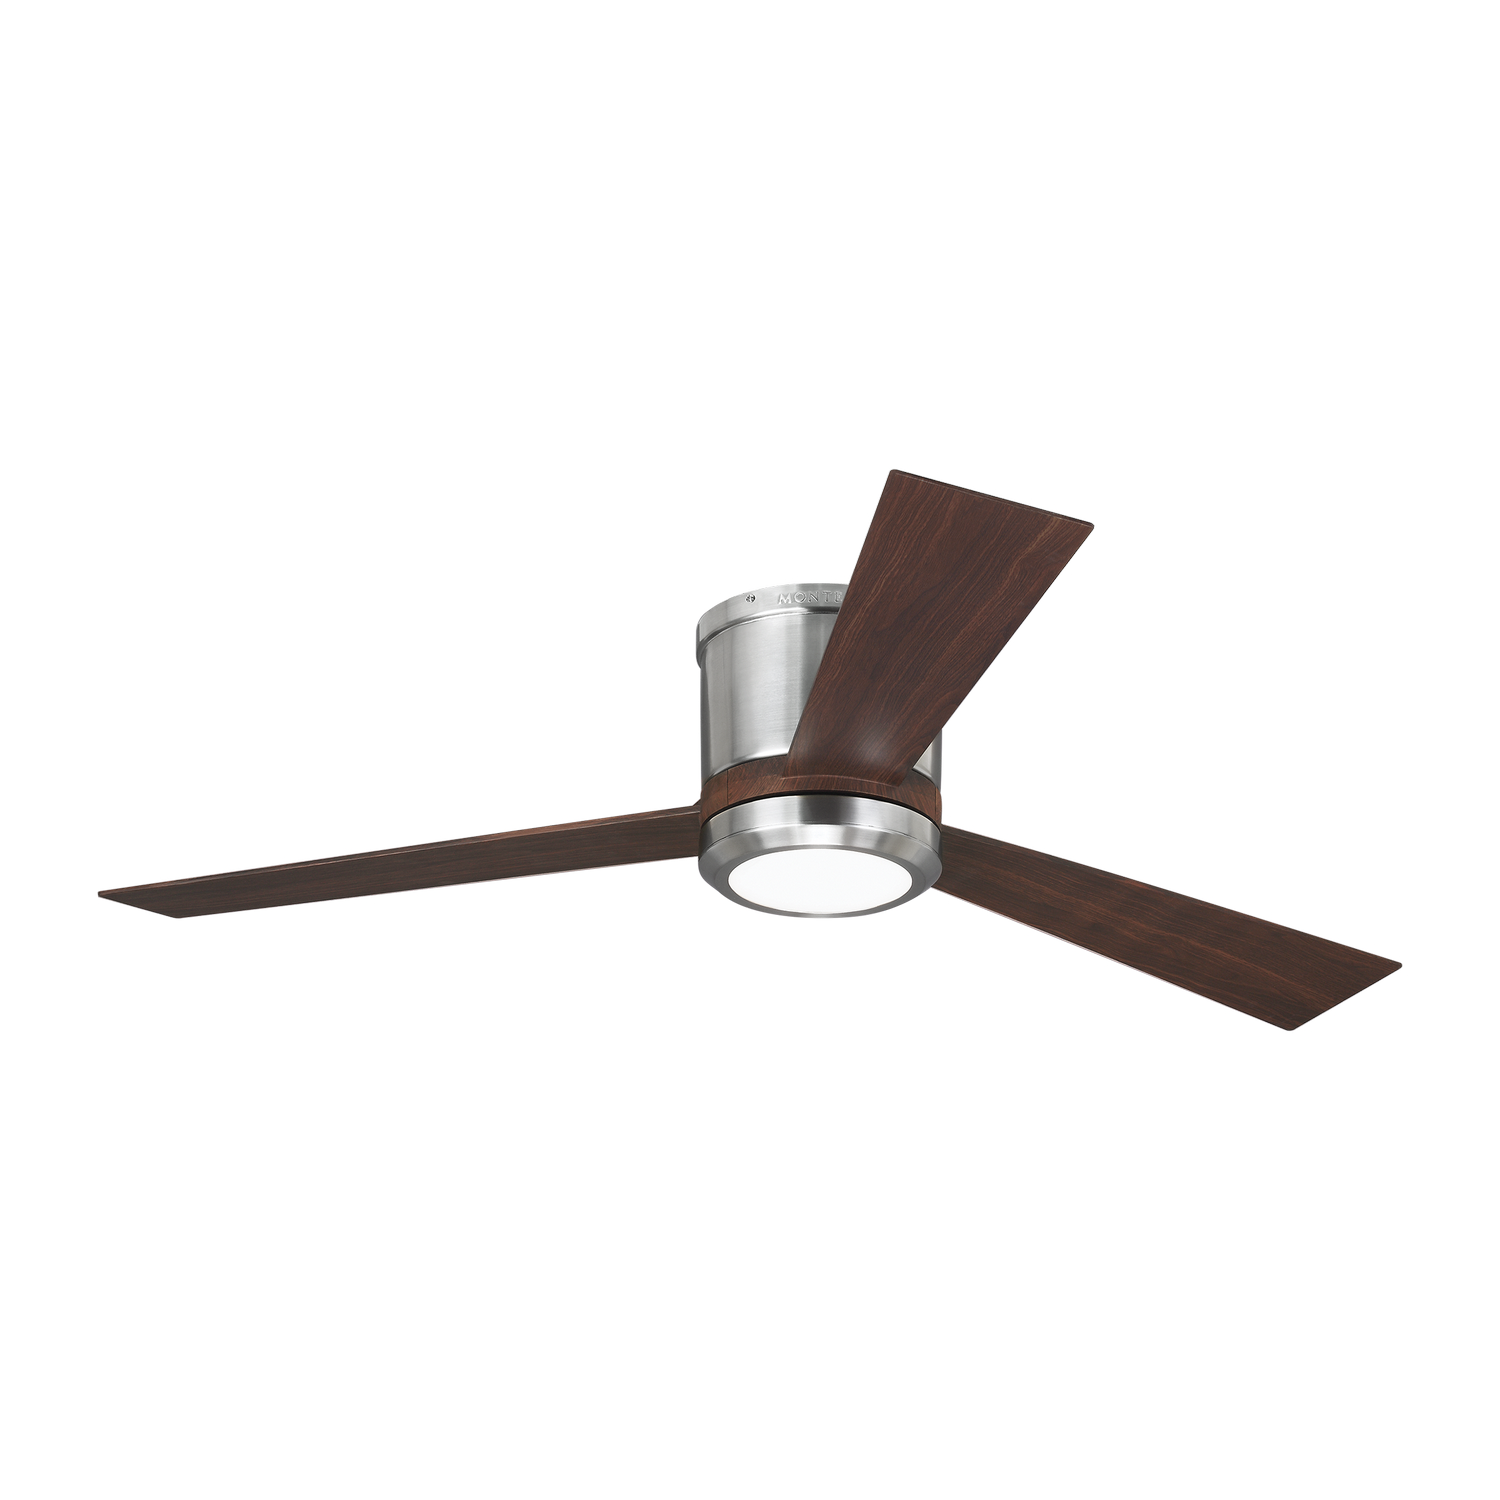 52 inchCeiling Fan from the Clarity collection by Monte Carlo 3CLYR52BSD V1